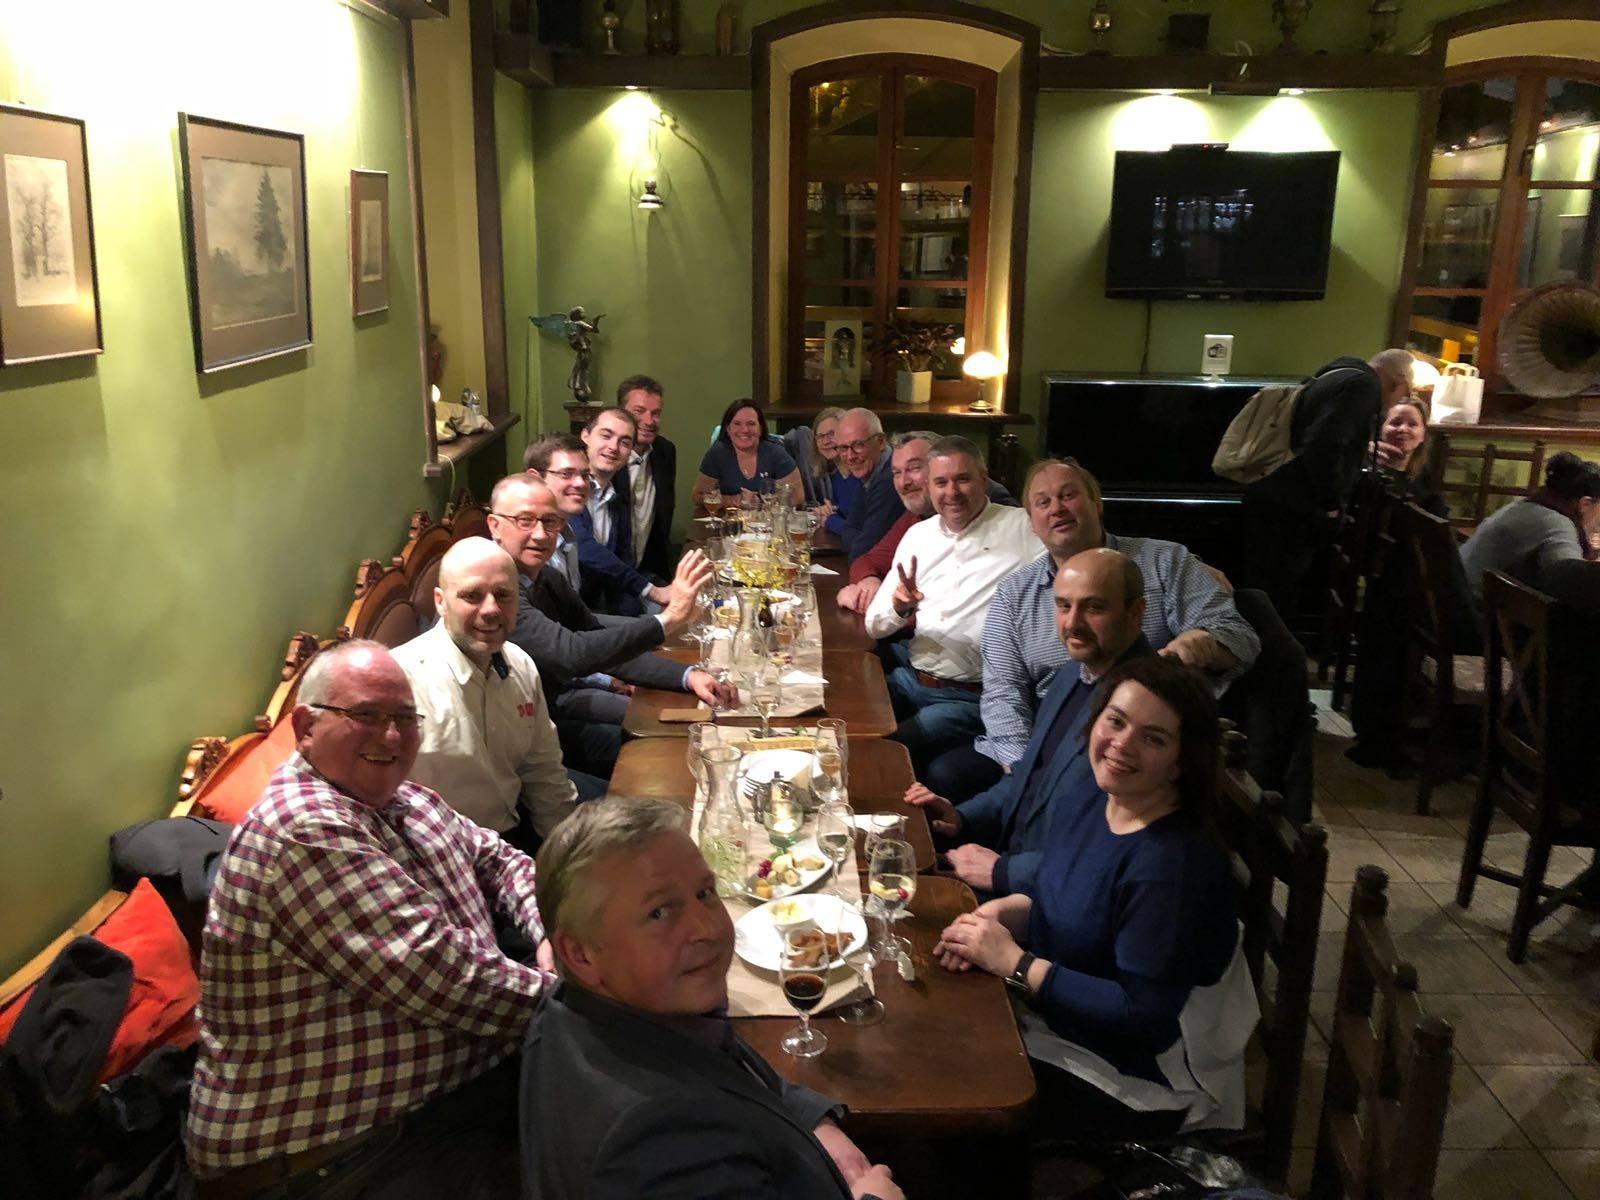 ETIM TC enjoys Lithuanian hospitality in Vilnius